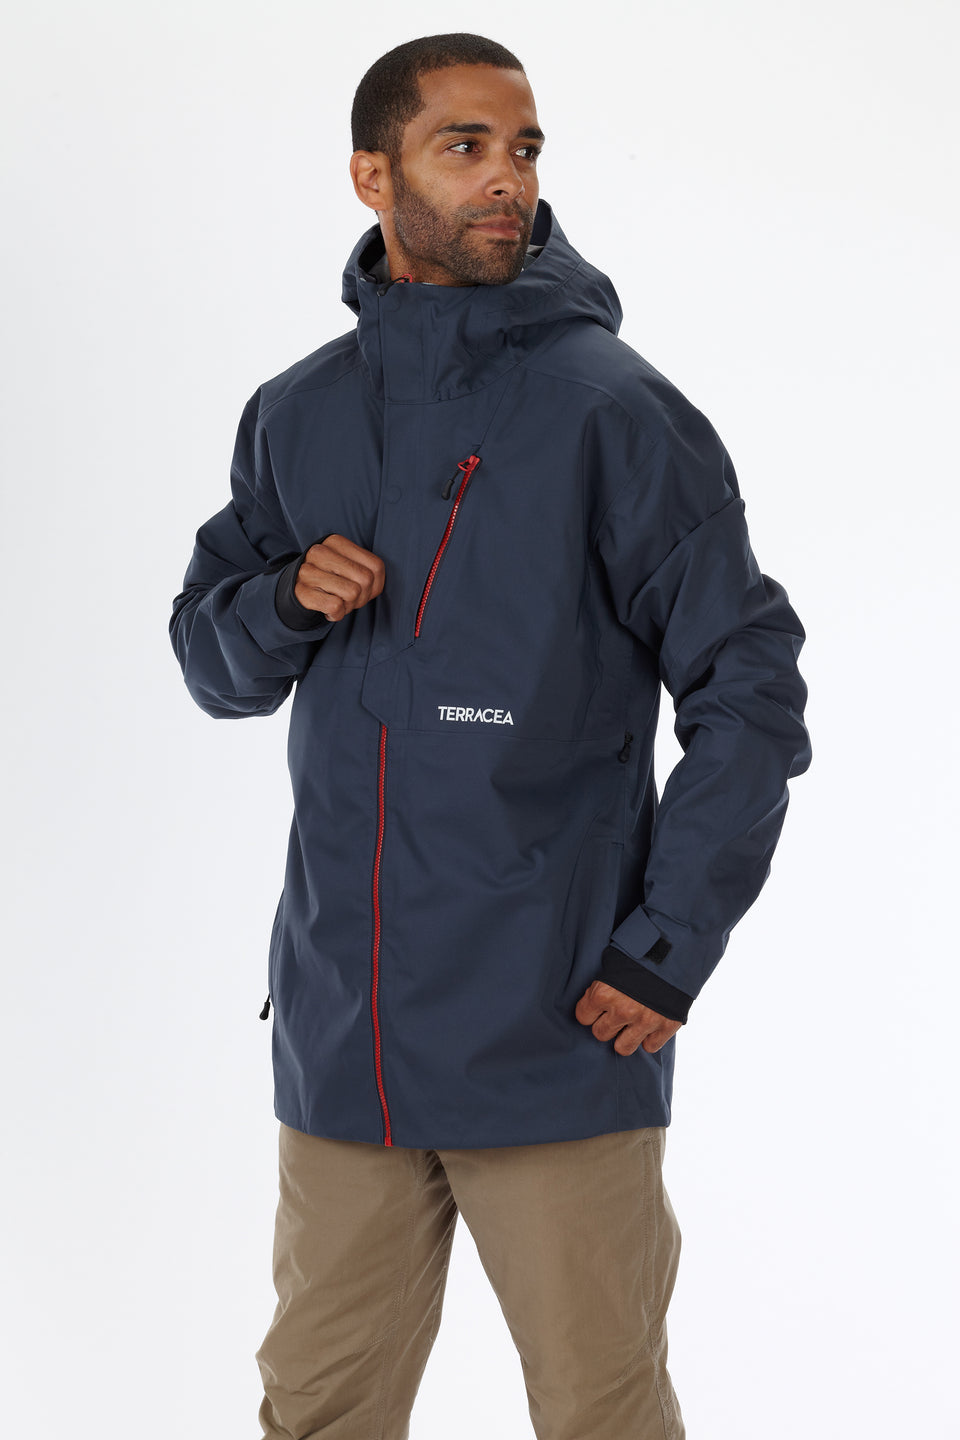 SORREL (MEN'S) 3L SHELL JACKET by Terracea - Waterproof, Windproof, Weatherproof Technical Outerwear